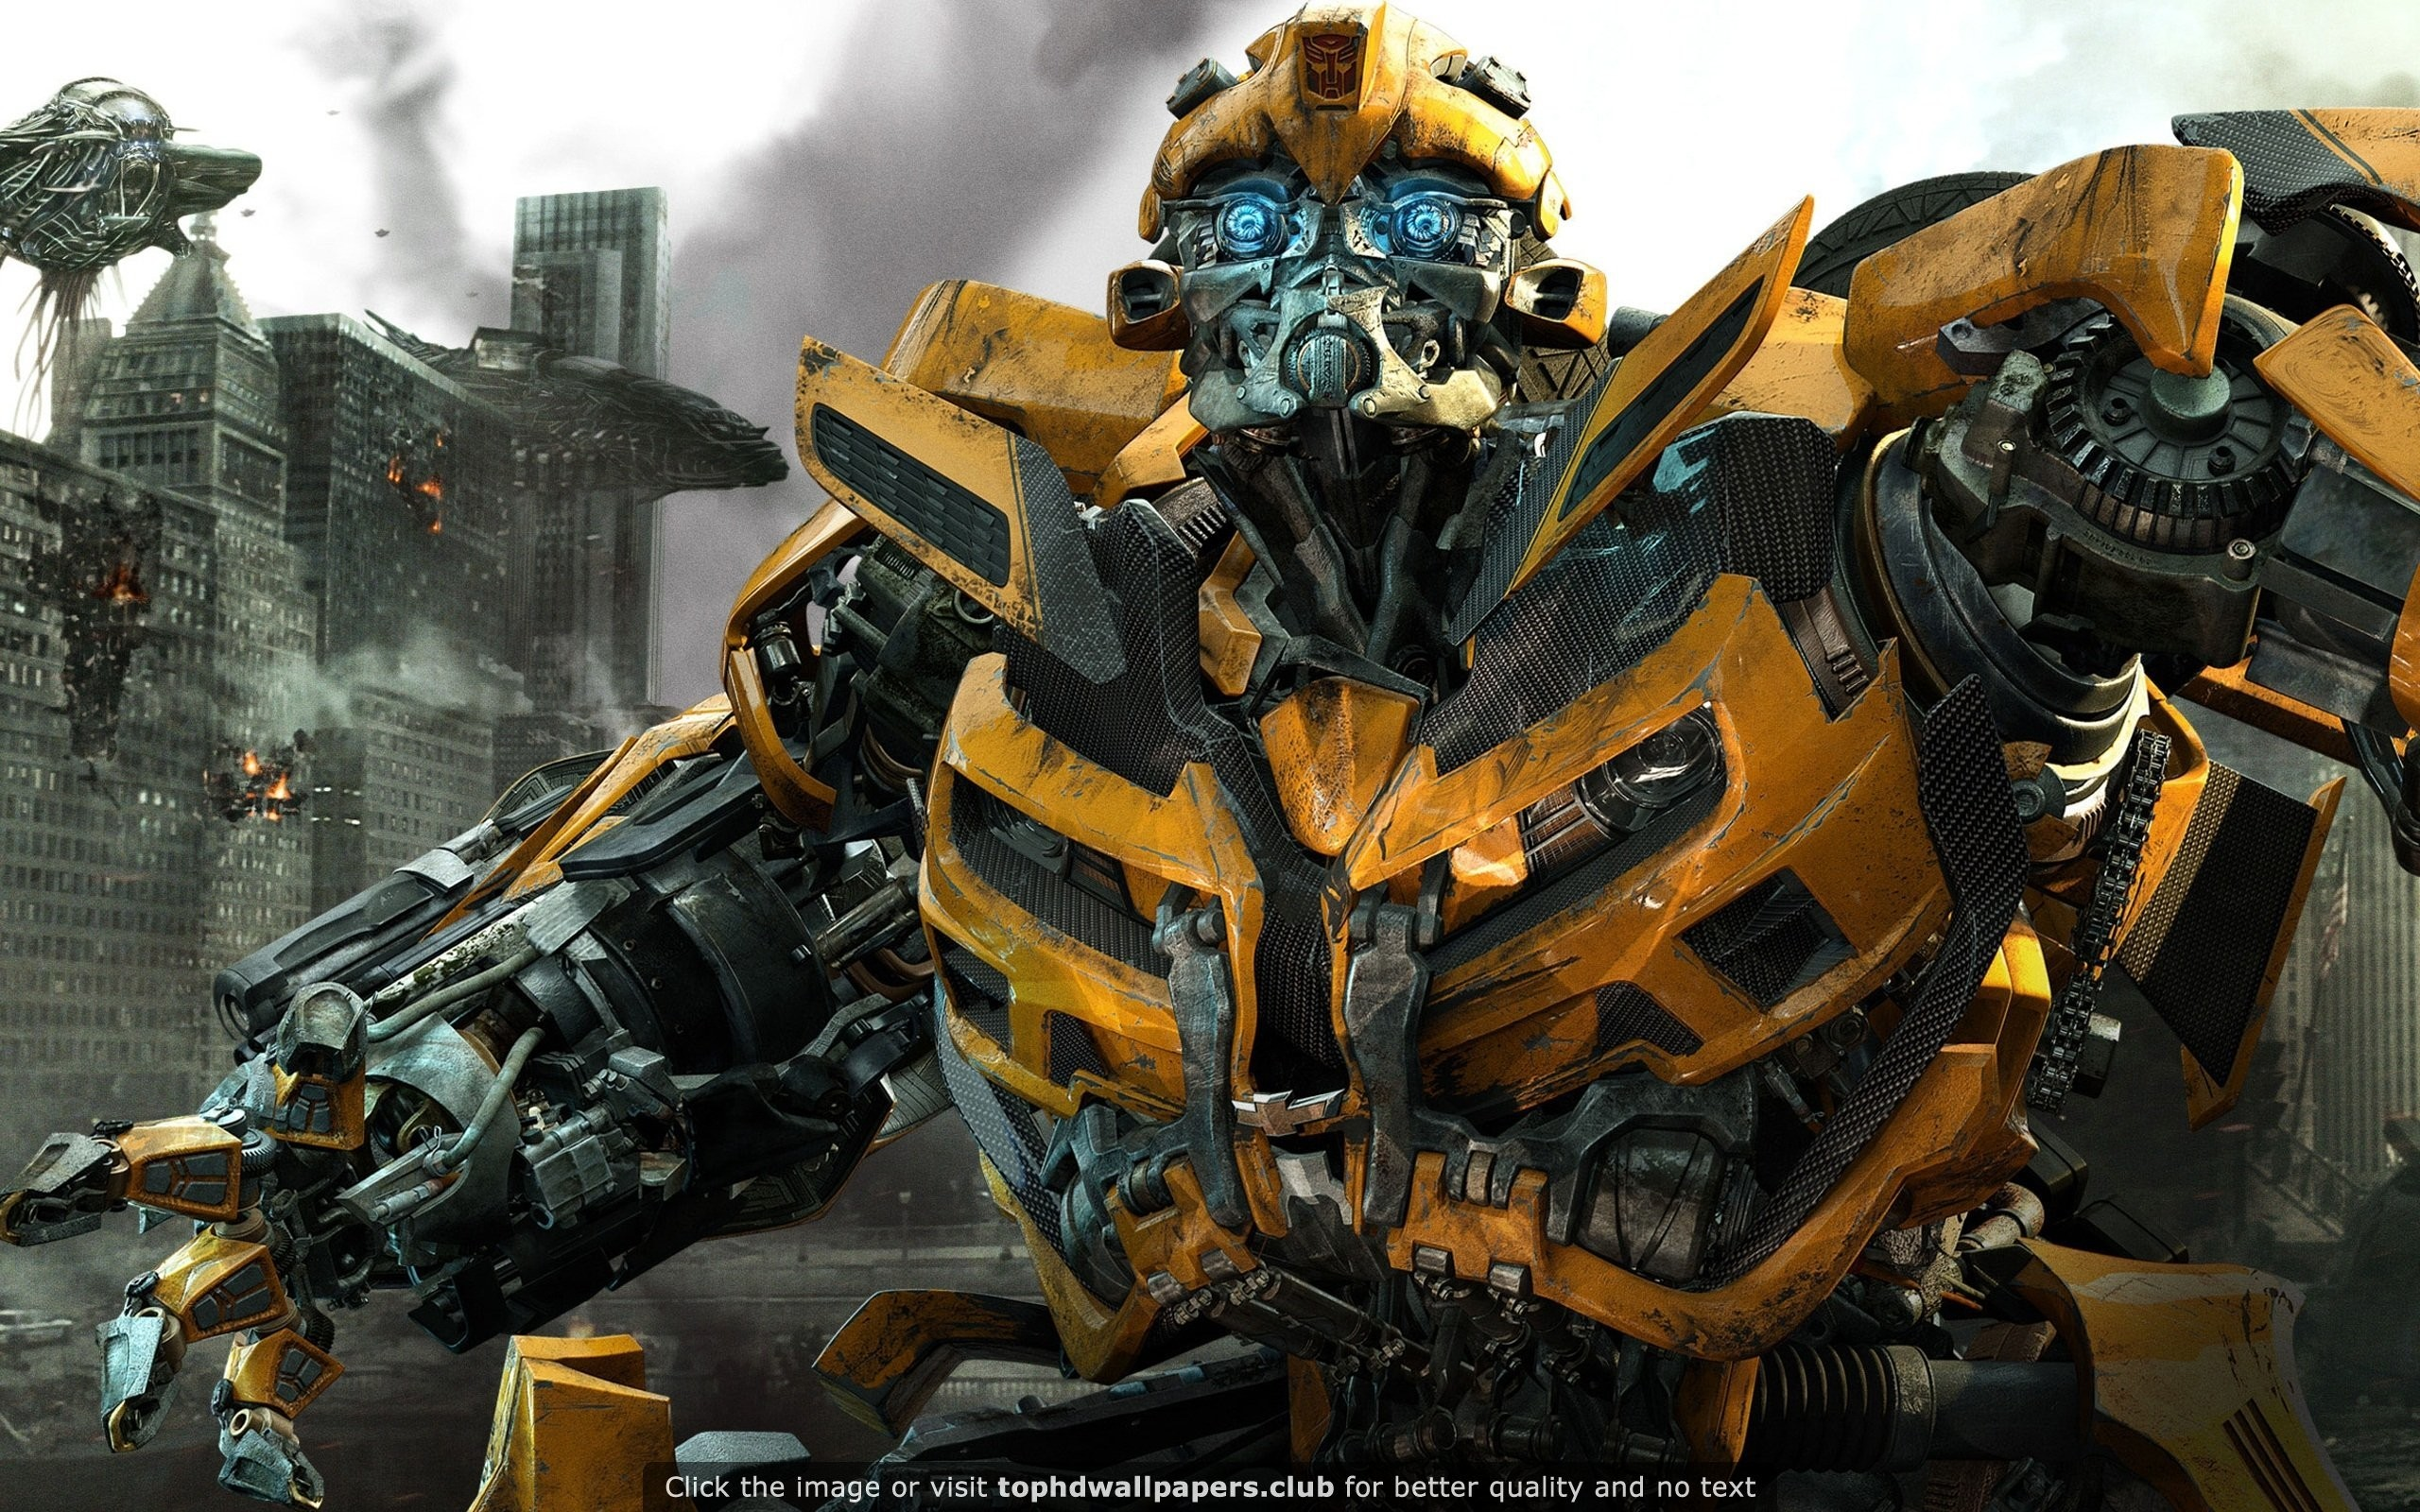 2560x1600  Bumblebee in Transformers 3 HD wallpaper for your PC, Mac or  Mobile device